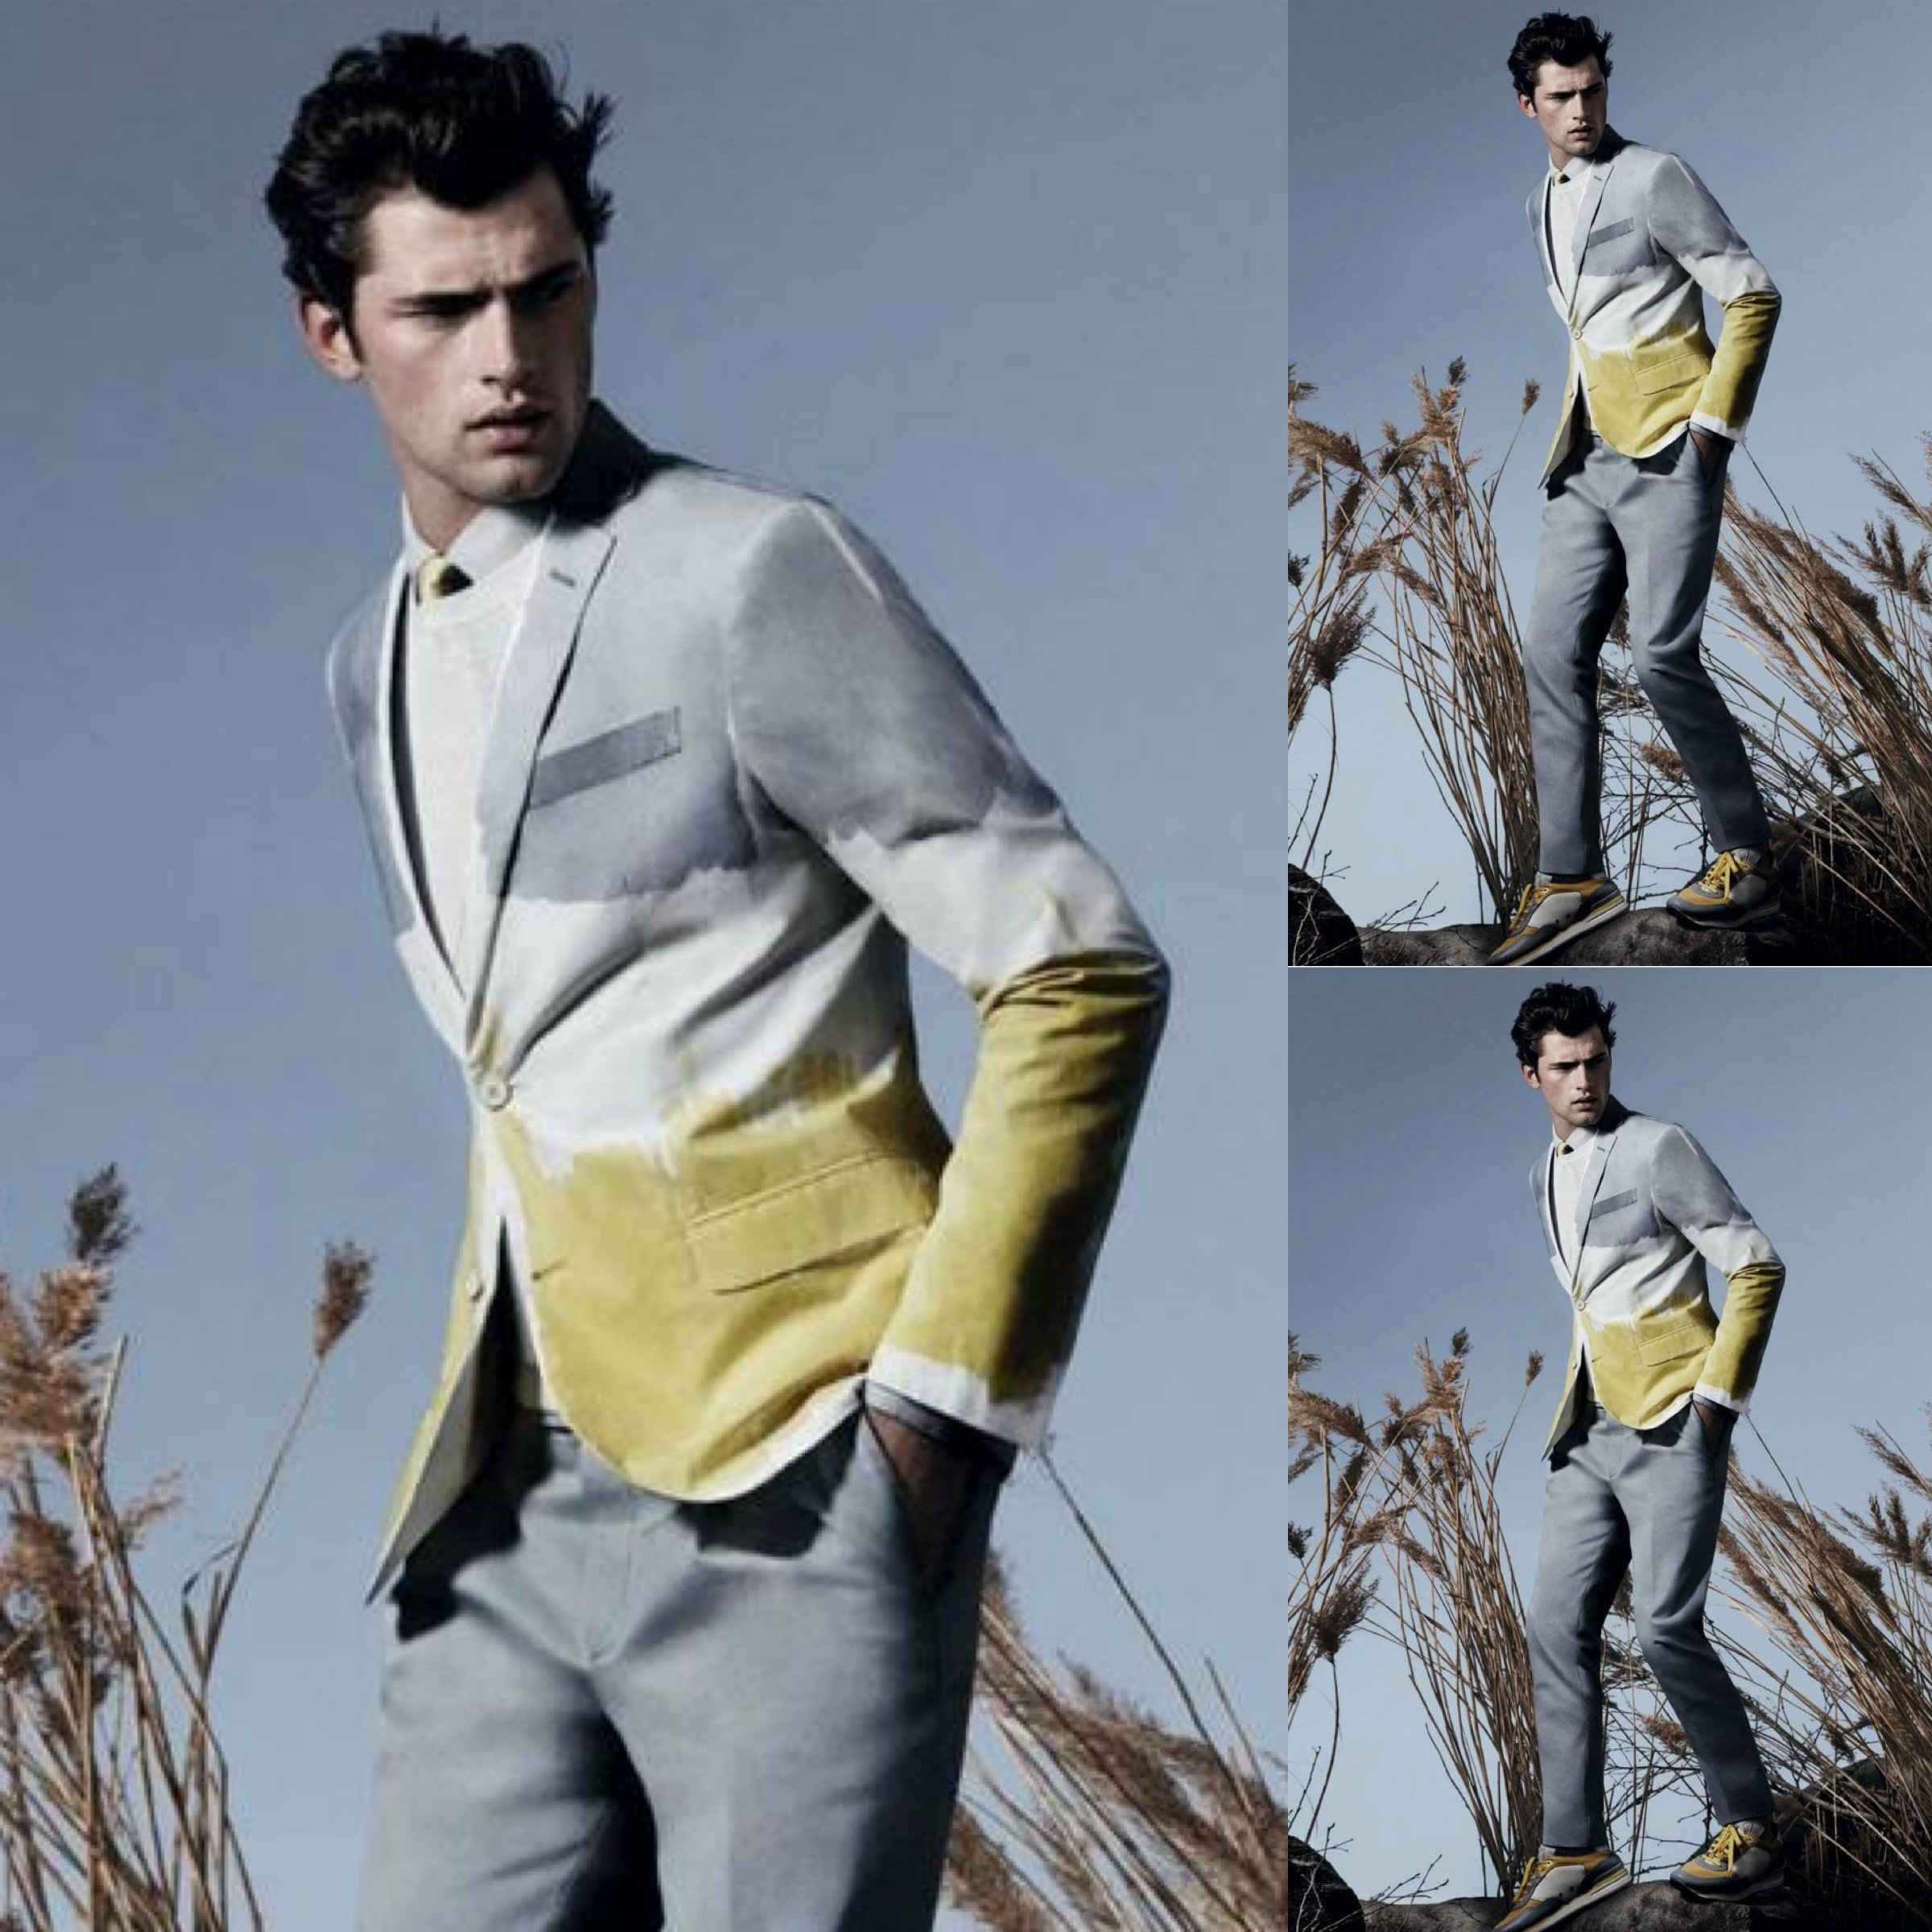 #5 - Sean O'Pry for Salvatore Ferragamo Spring Summer 2013 Lookbook